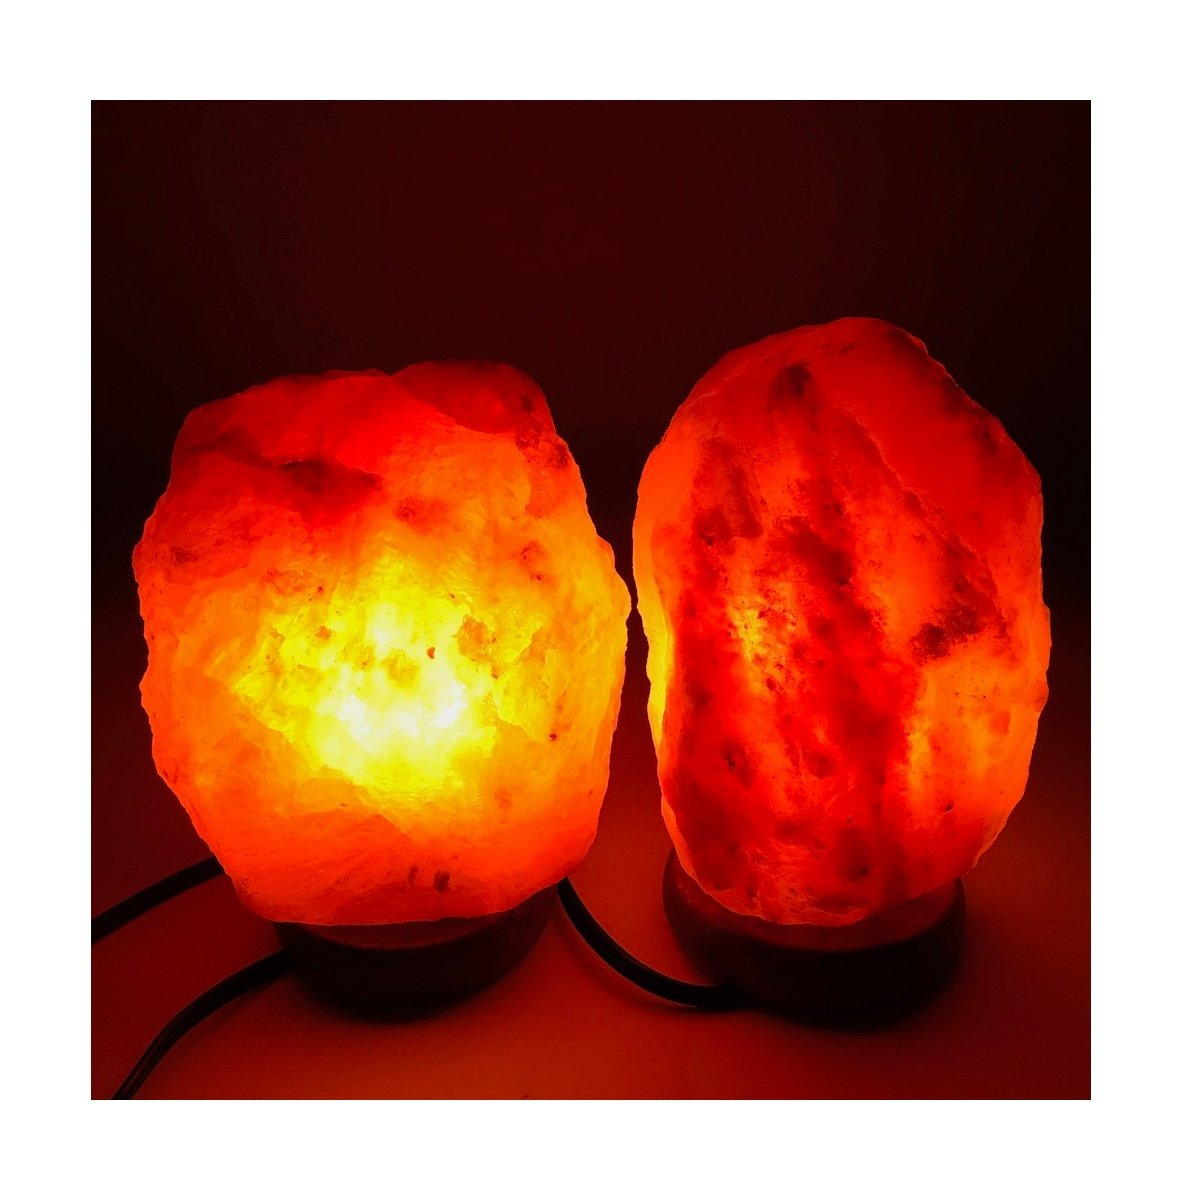 2x Himalaya Natural Handcraft Rough Raw Crystal Salt Lamp,7.5''-8''Tall, X044, Exact Item Delivered